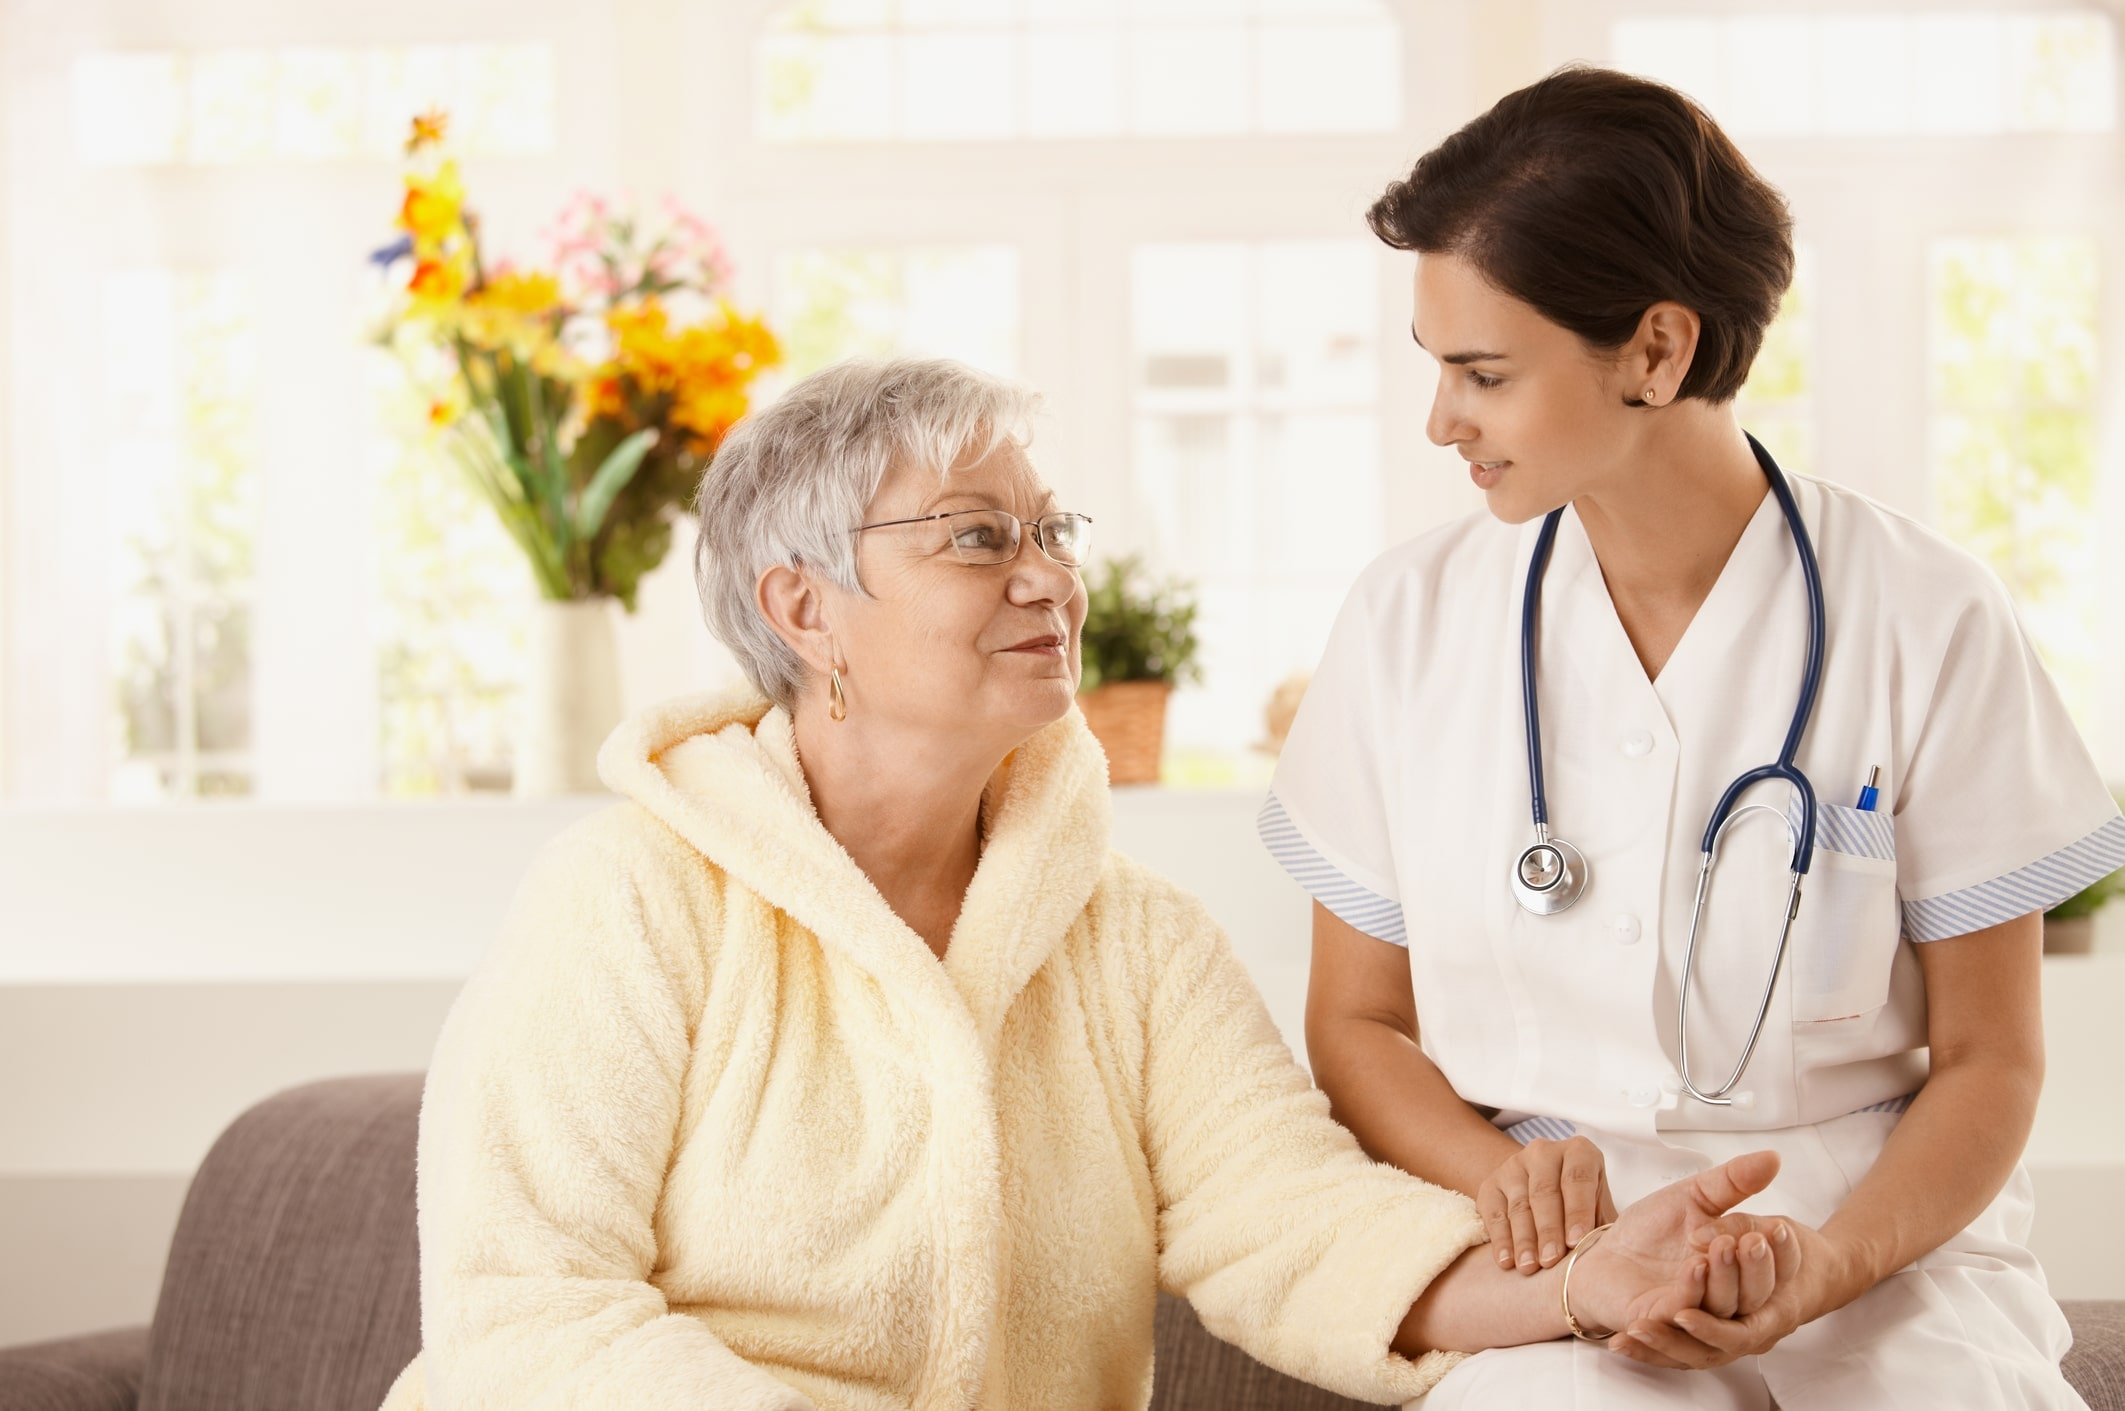 Home health care and private duty care include very different services.